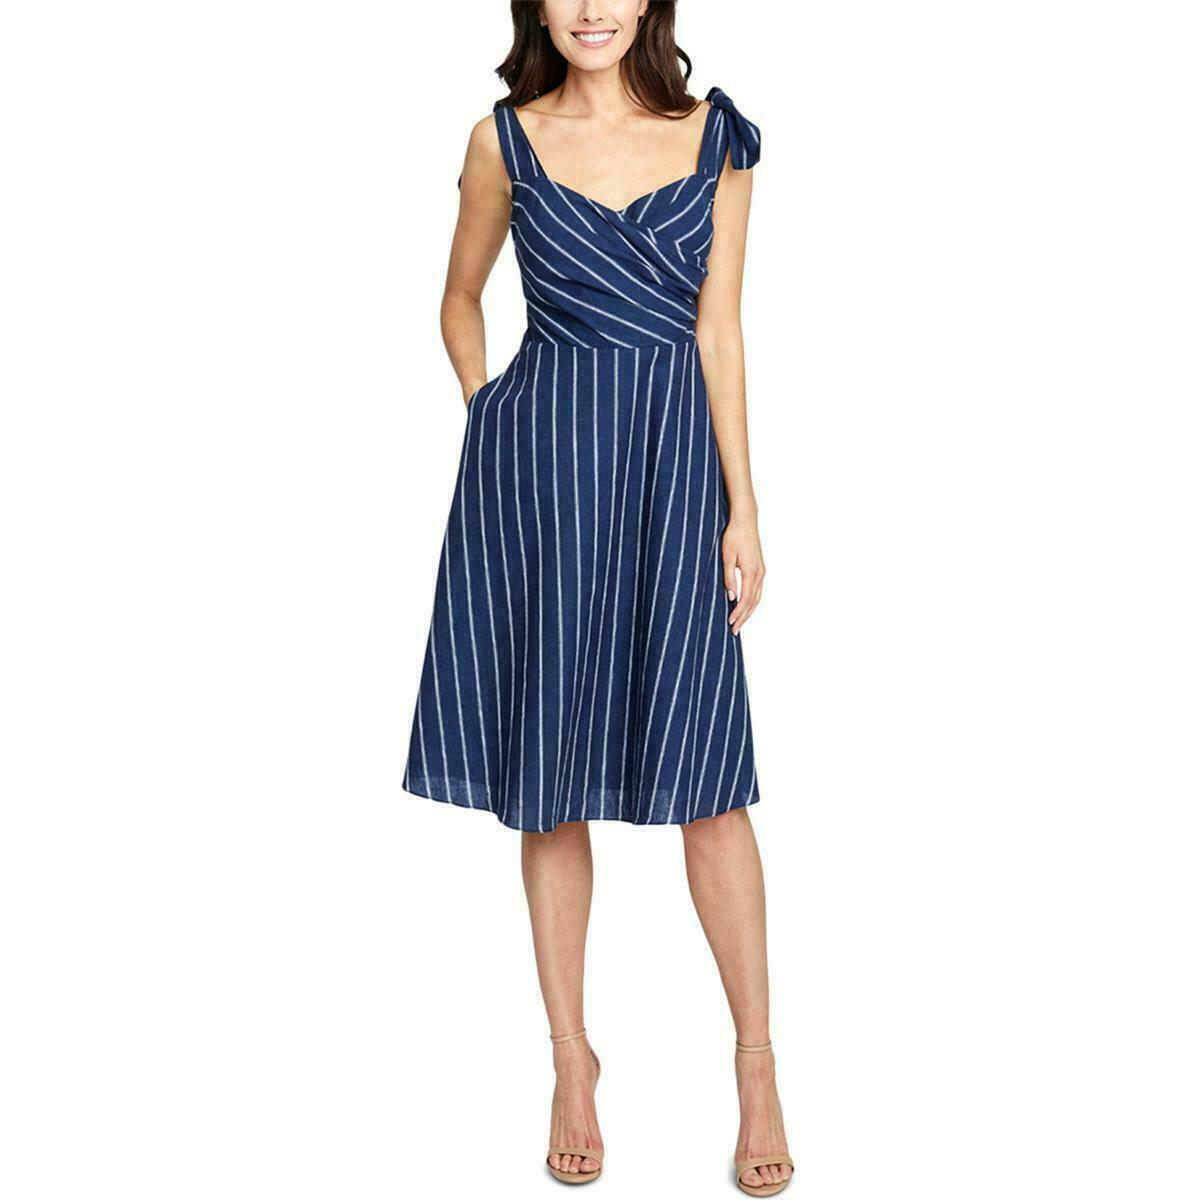 RACHEL Rachel Roy Womens Size 2 Blue Linen Striped Daytime Kate Dress NEW $150